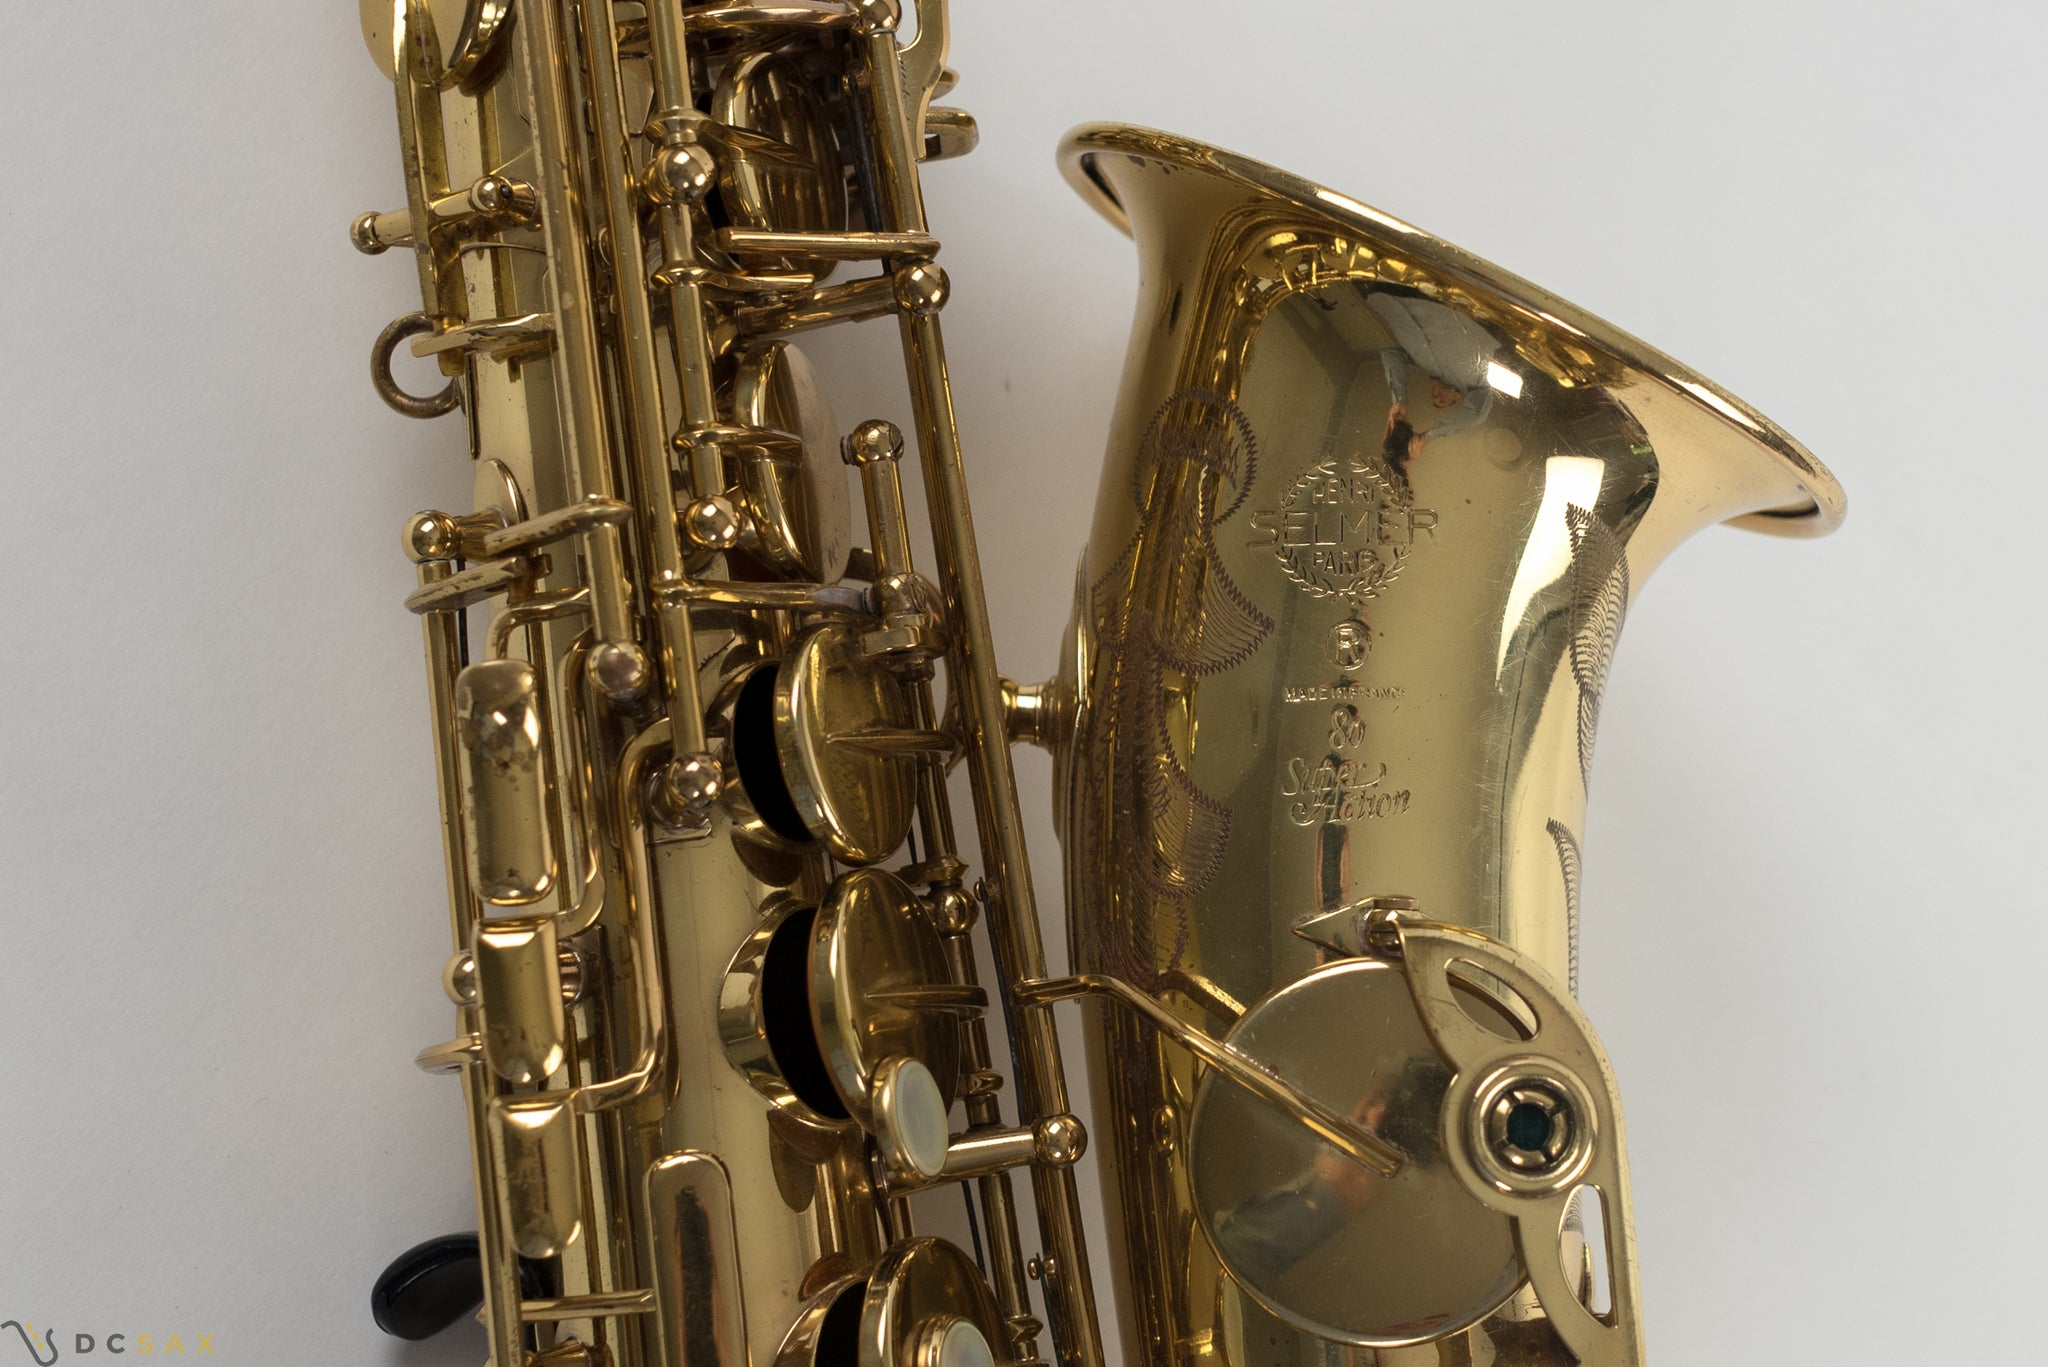 Selmer Super Action 80 Alto Saxophone